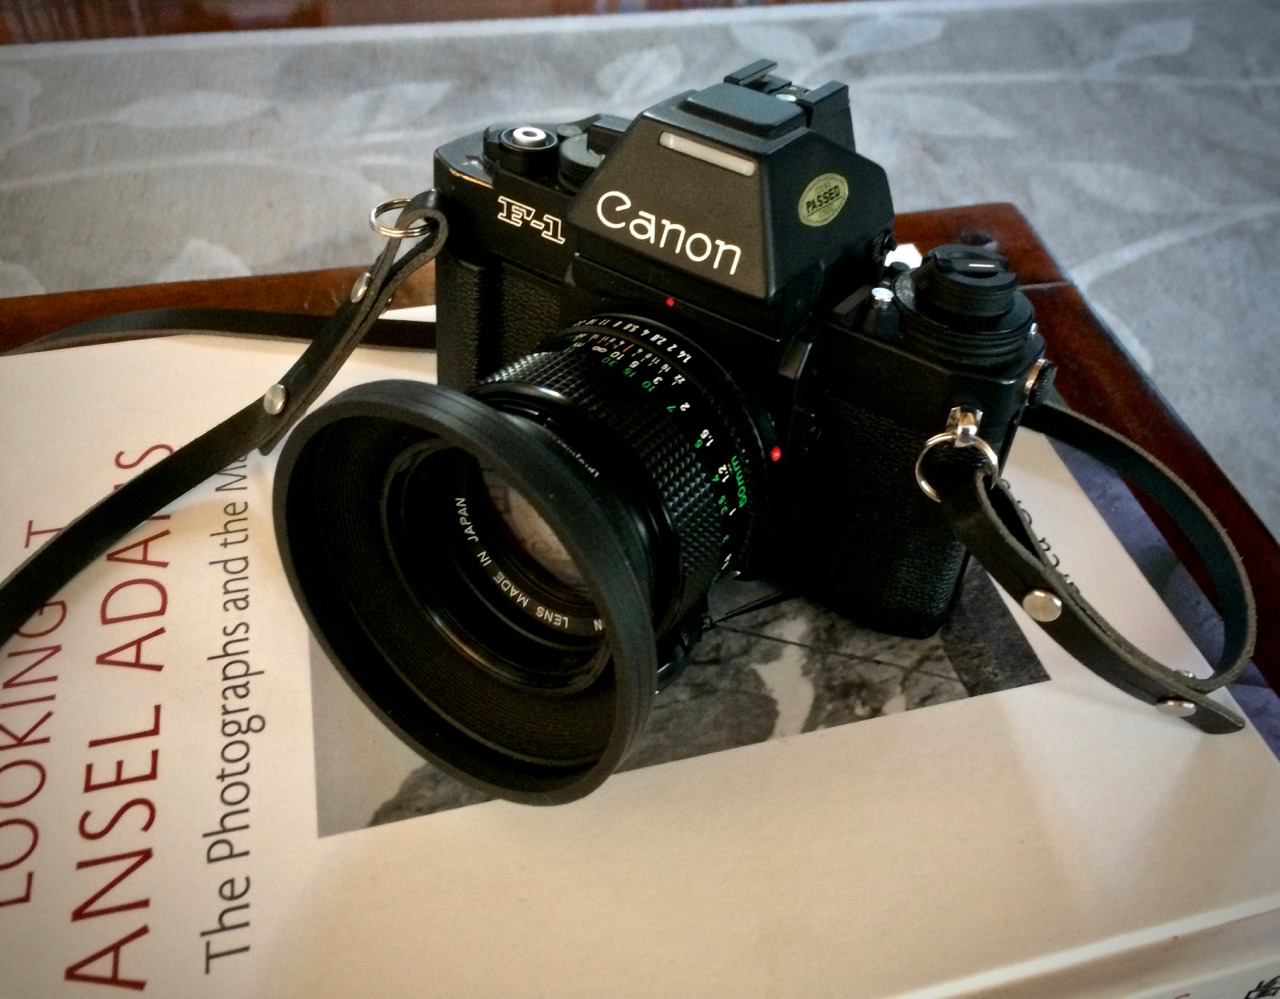 Canon F-1n - Made me a Canon fan!